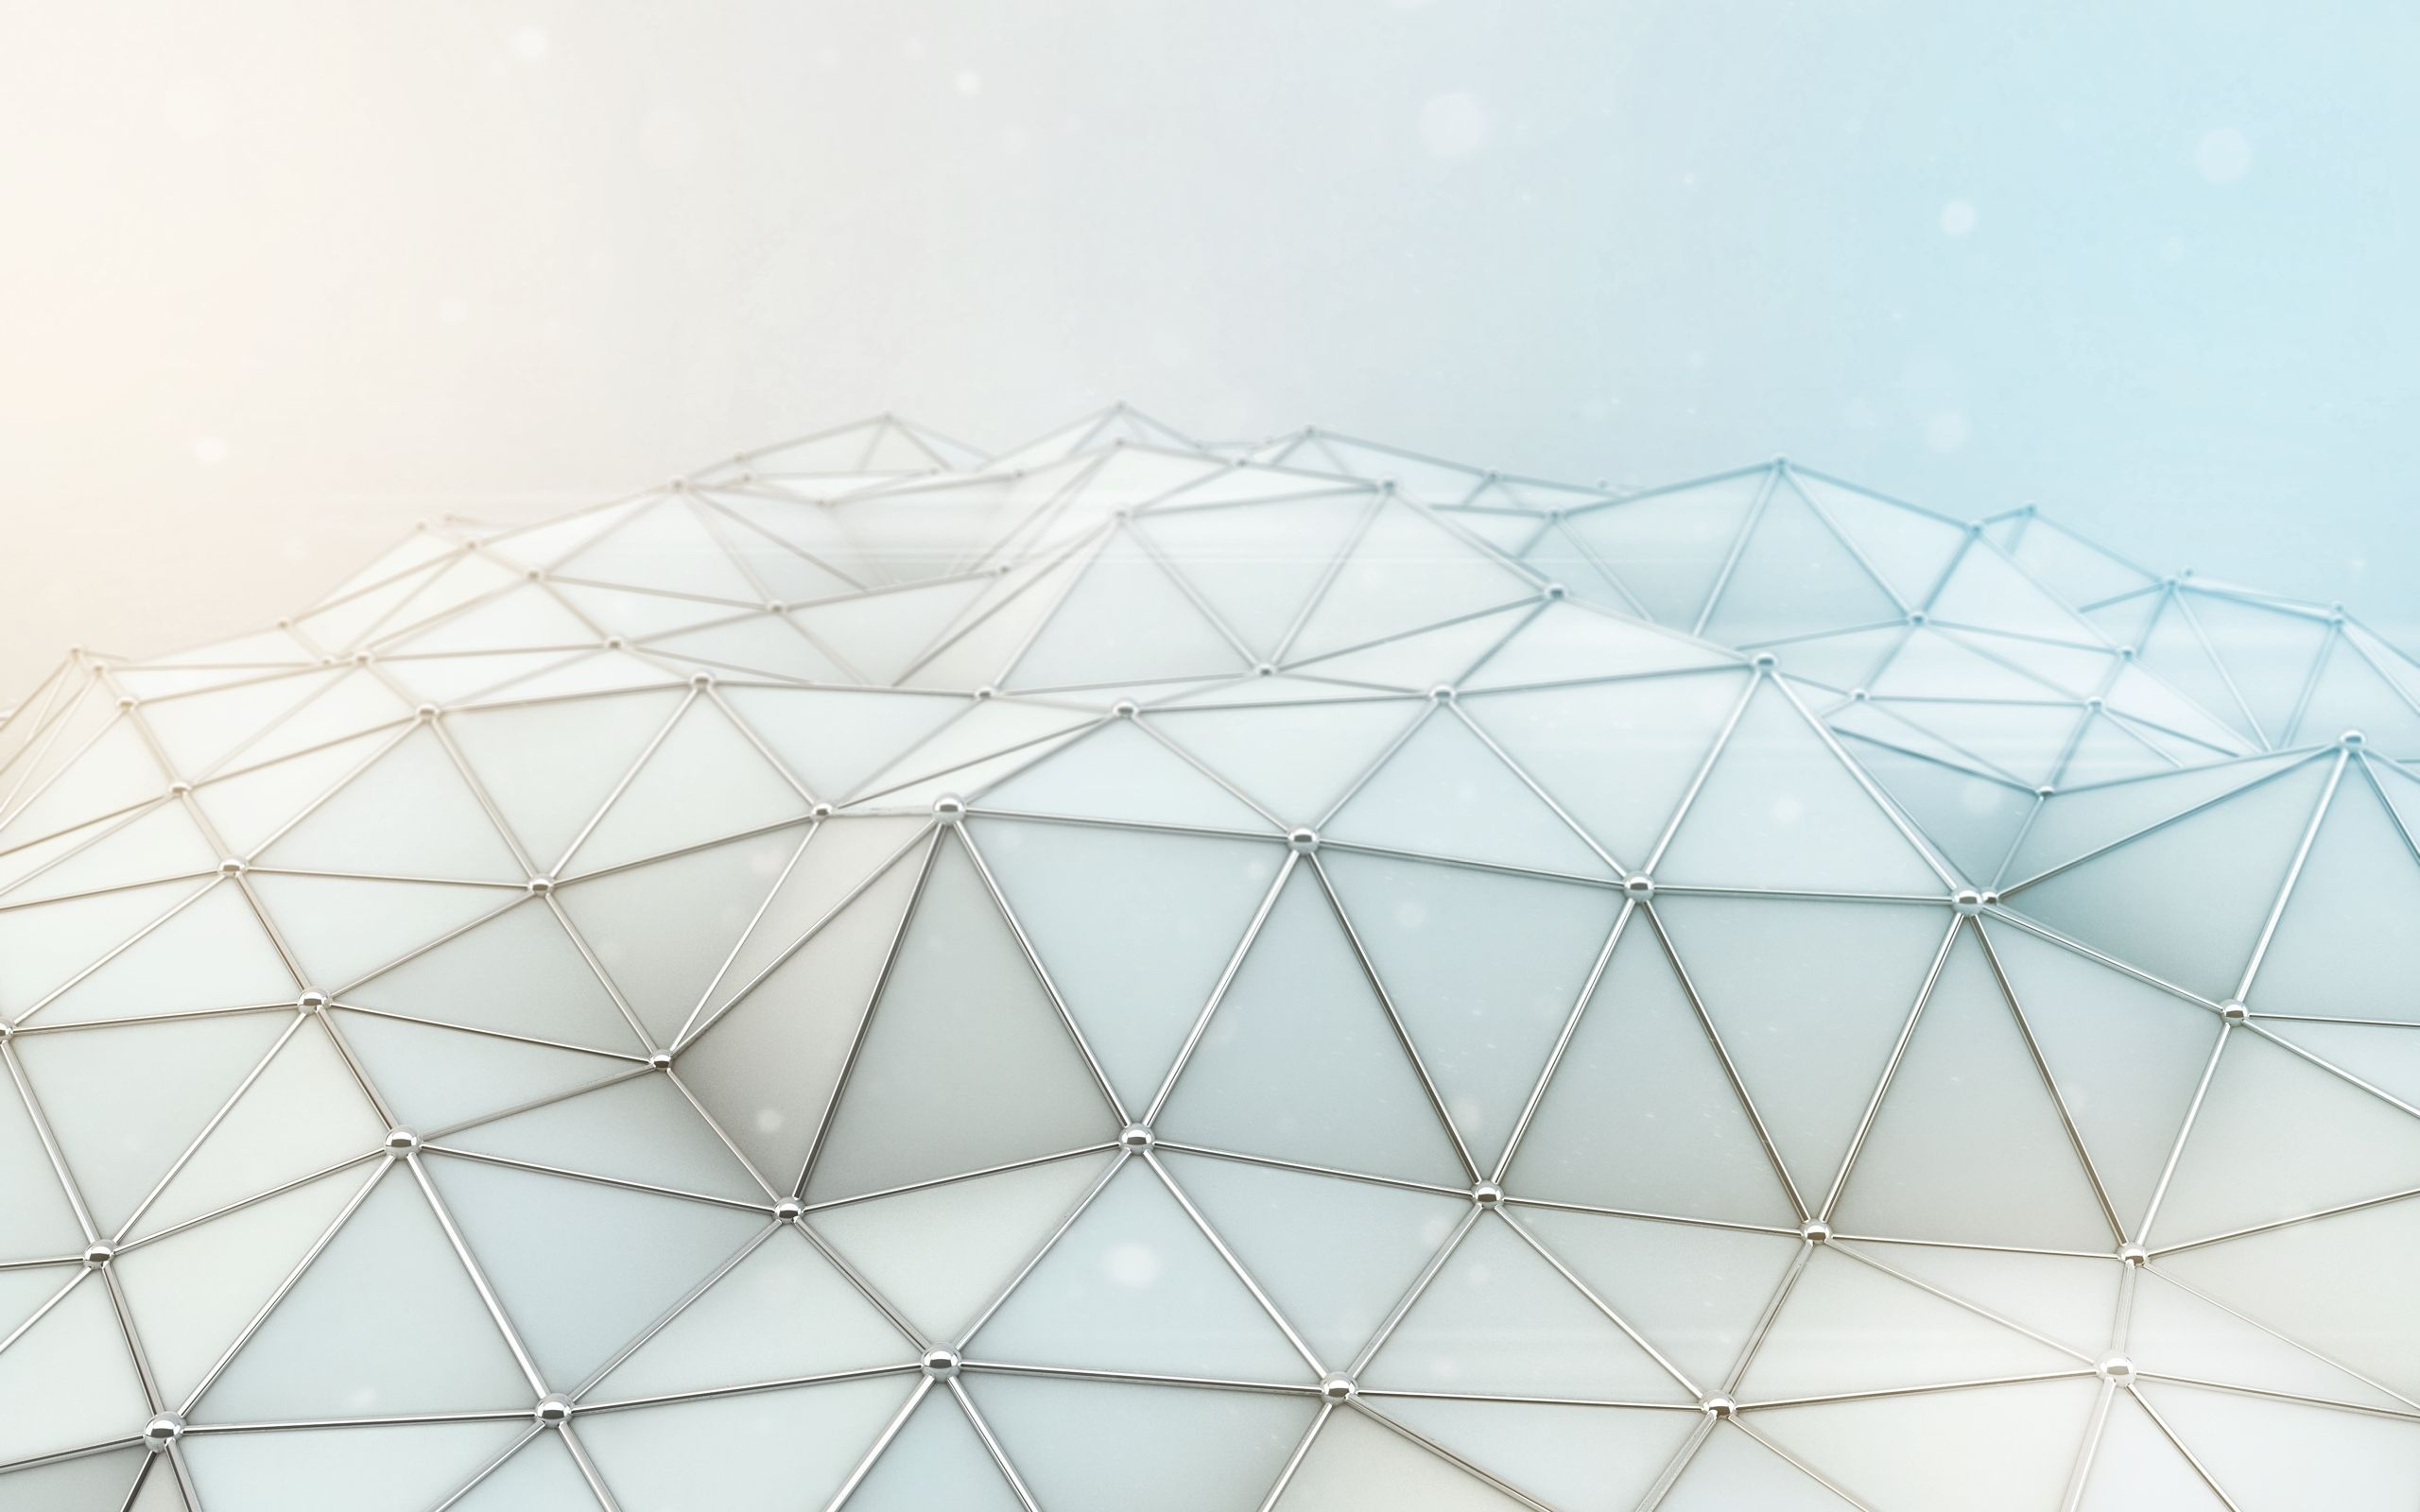 Abstract White Patterns Polygon 2560x1600 Wallpaper Art Hd Wallpaper Abstract Wallpaper Desktop Wallpaper Art Wallpaper Abstract white wallpaper light